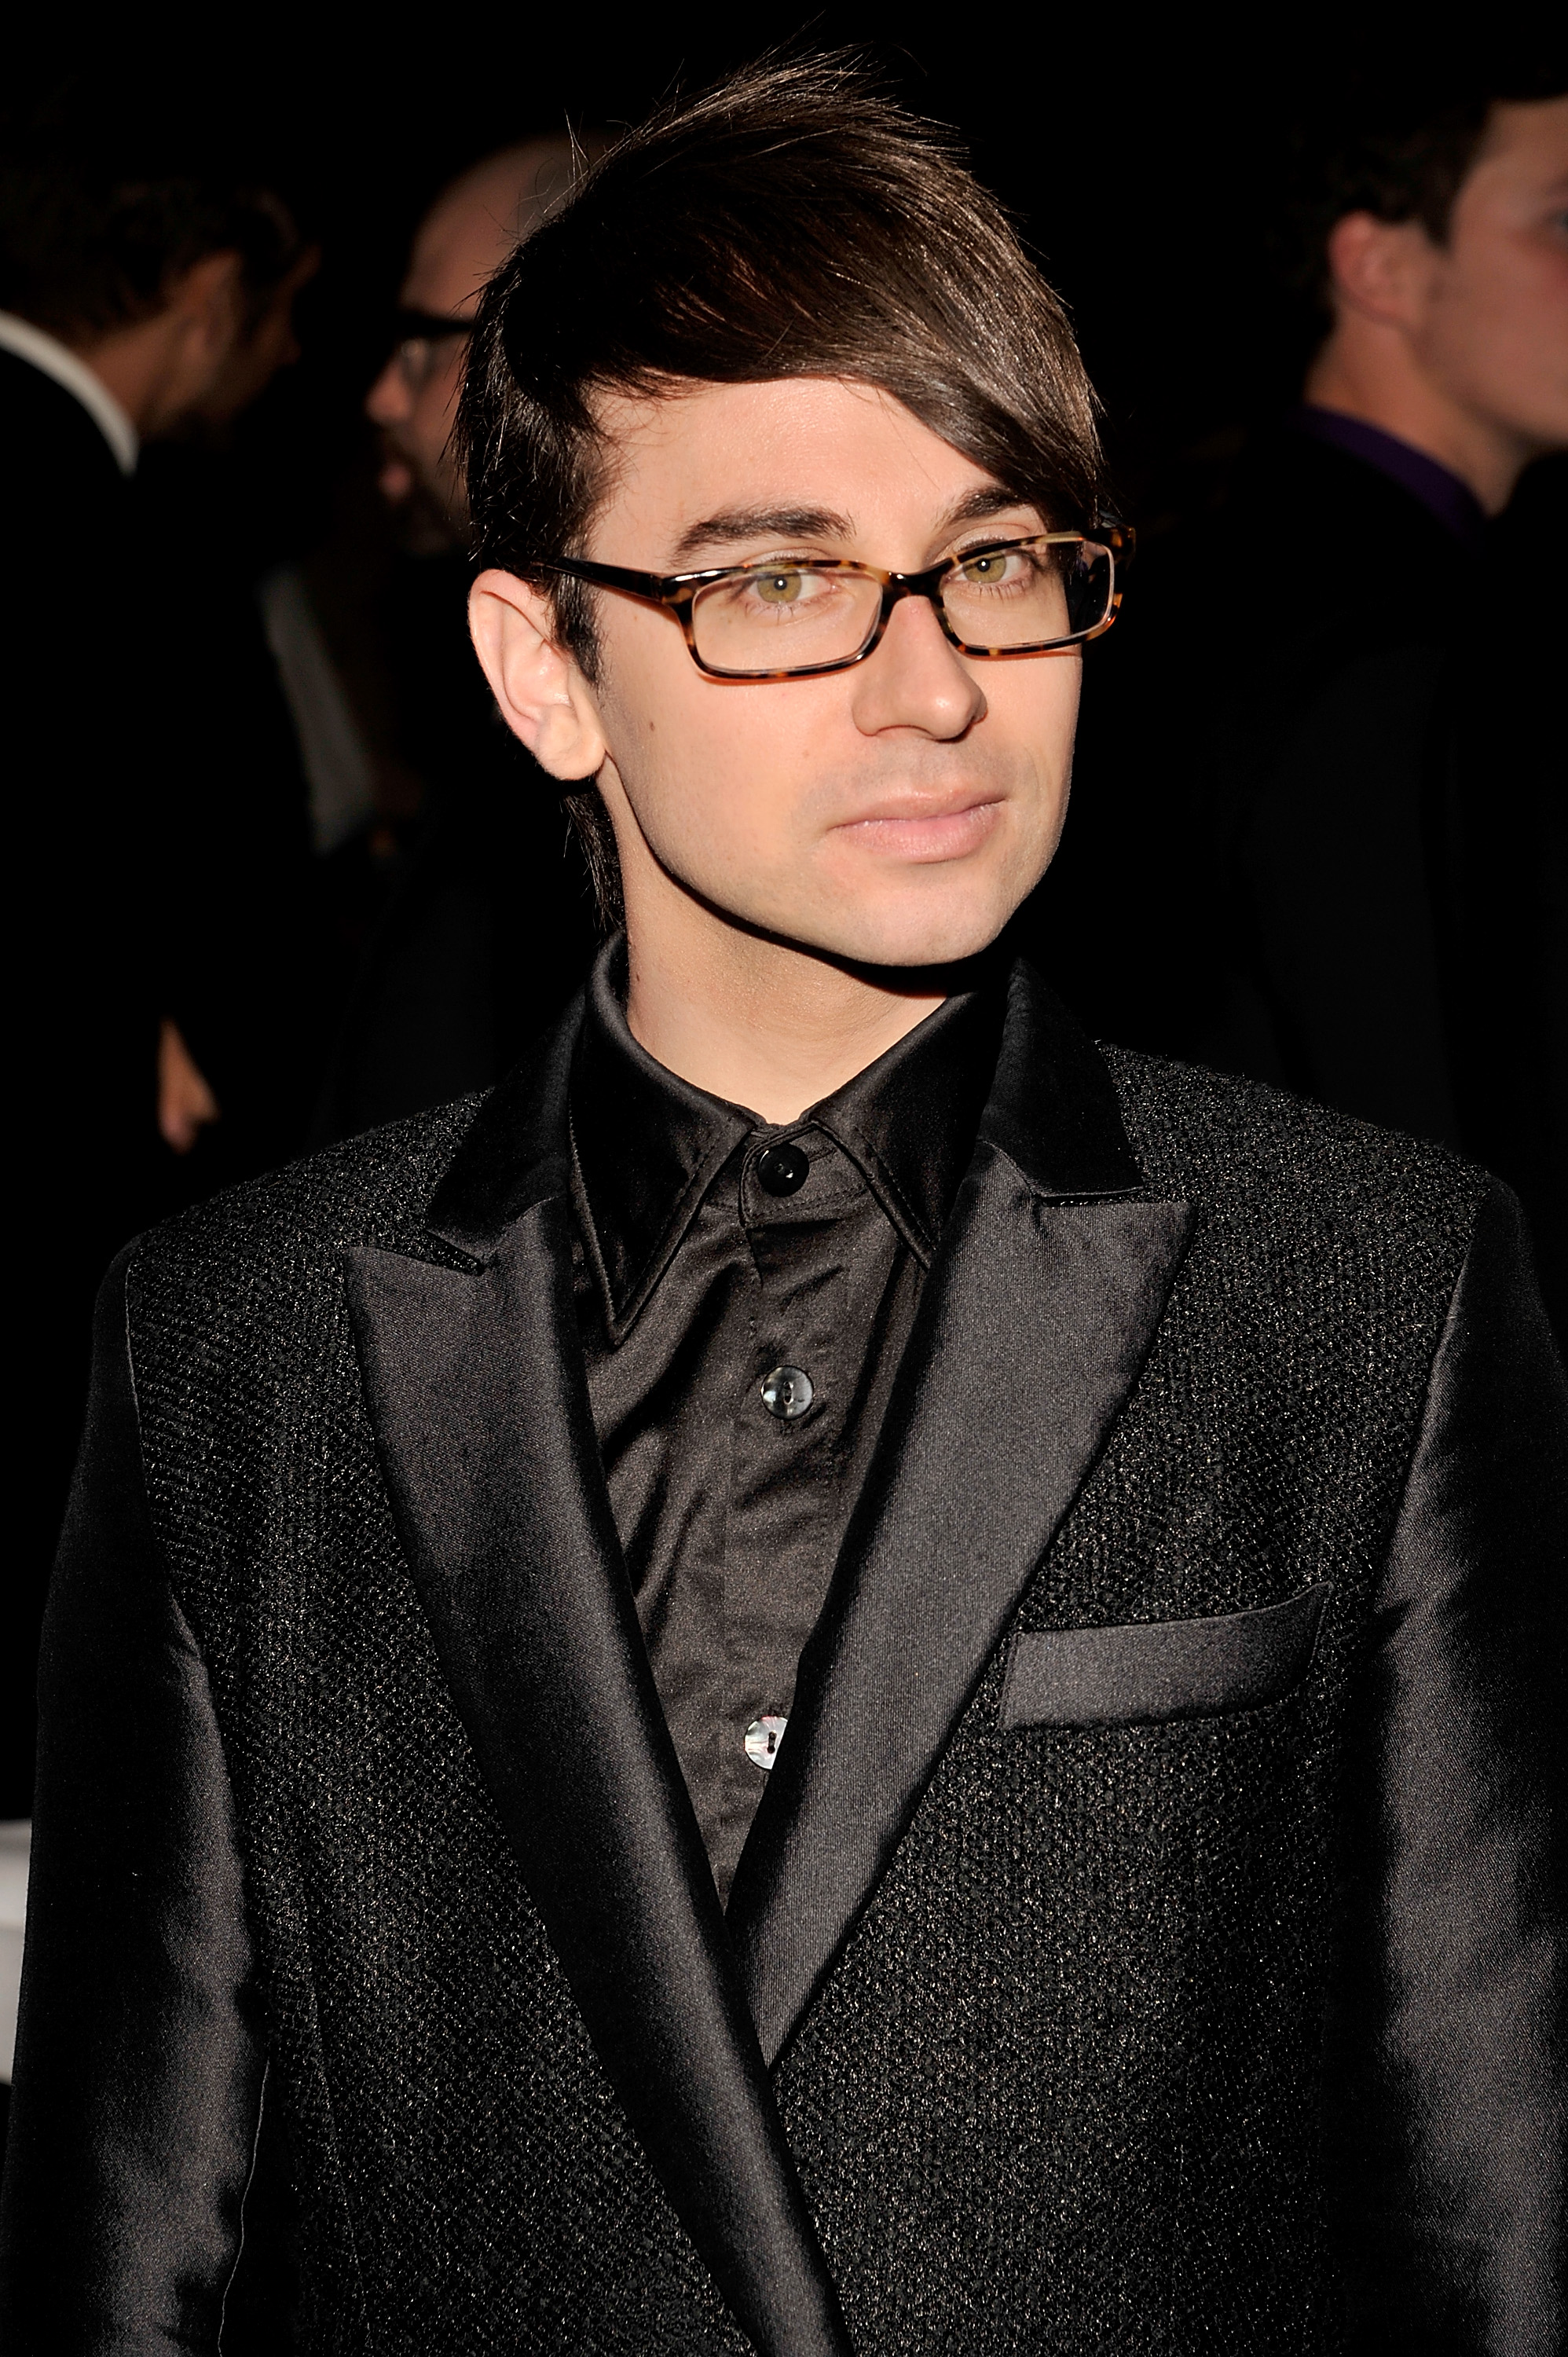 Christian Siriano's Holiday Gift Guide